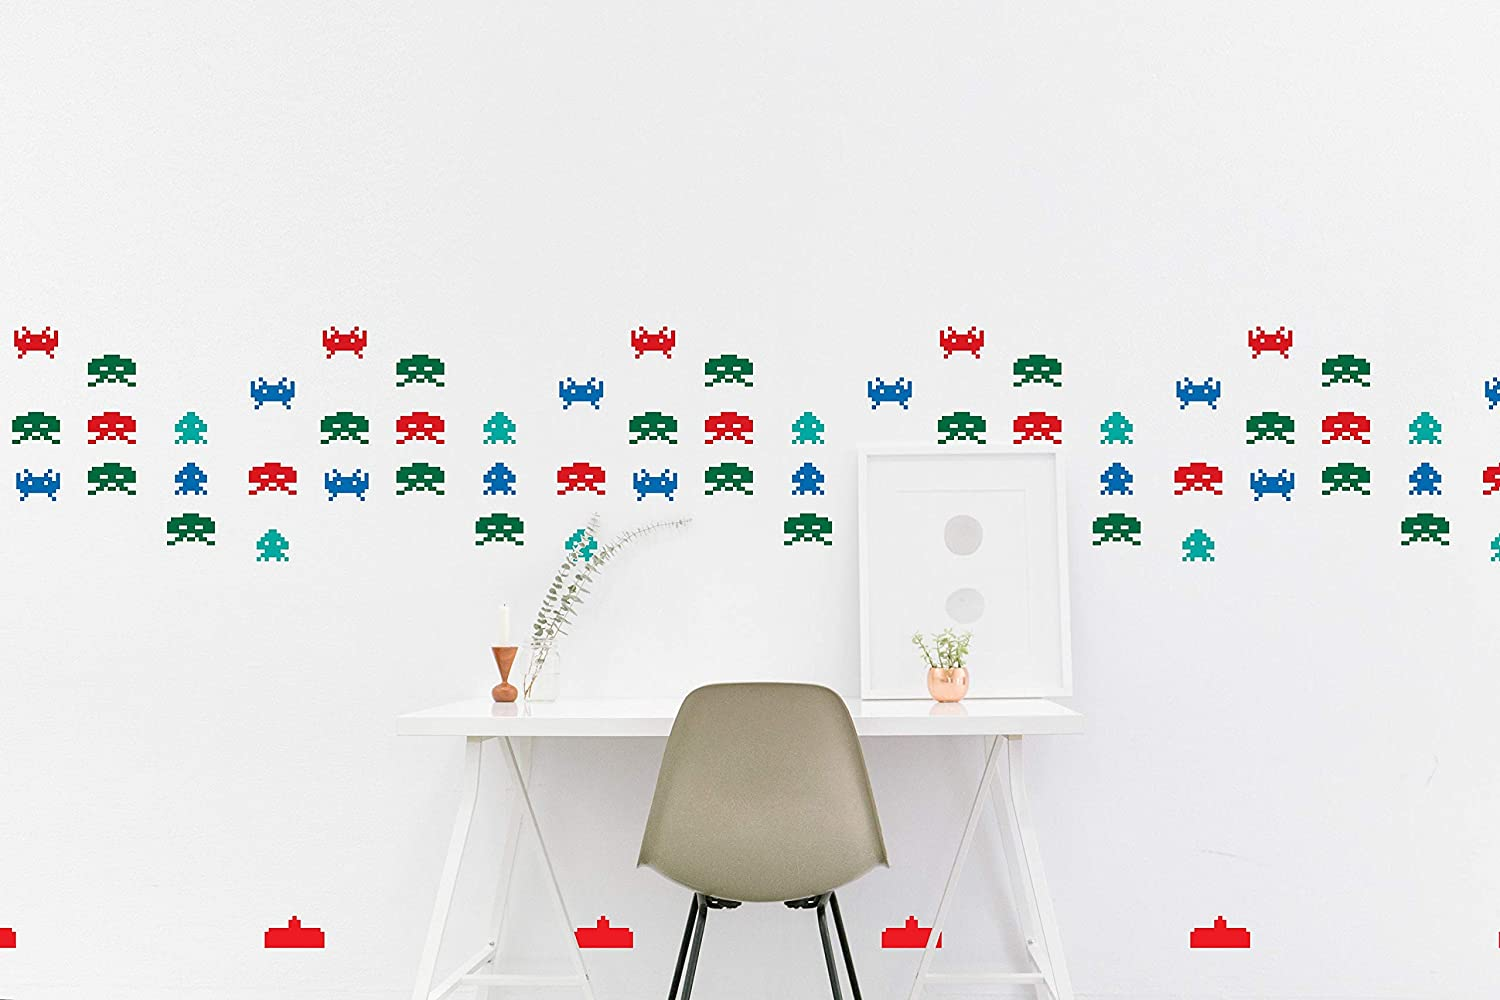 BYRON HOYLE Space Invaders Wall Decal Pattern Retro Atari Game Inspired Sticker Kids Room Wall Nursery Bedroom Wallpaper Vinyl Decals Home Decor Sticker